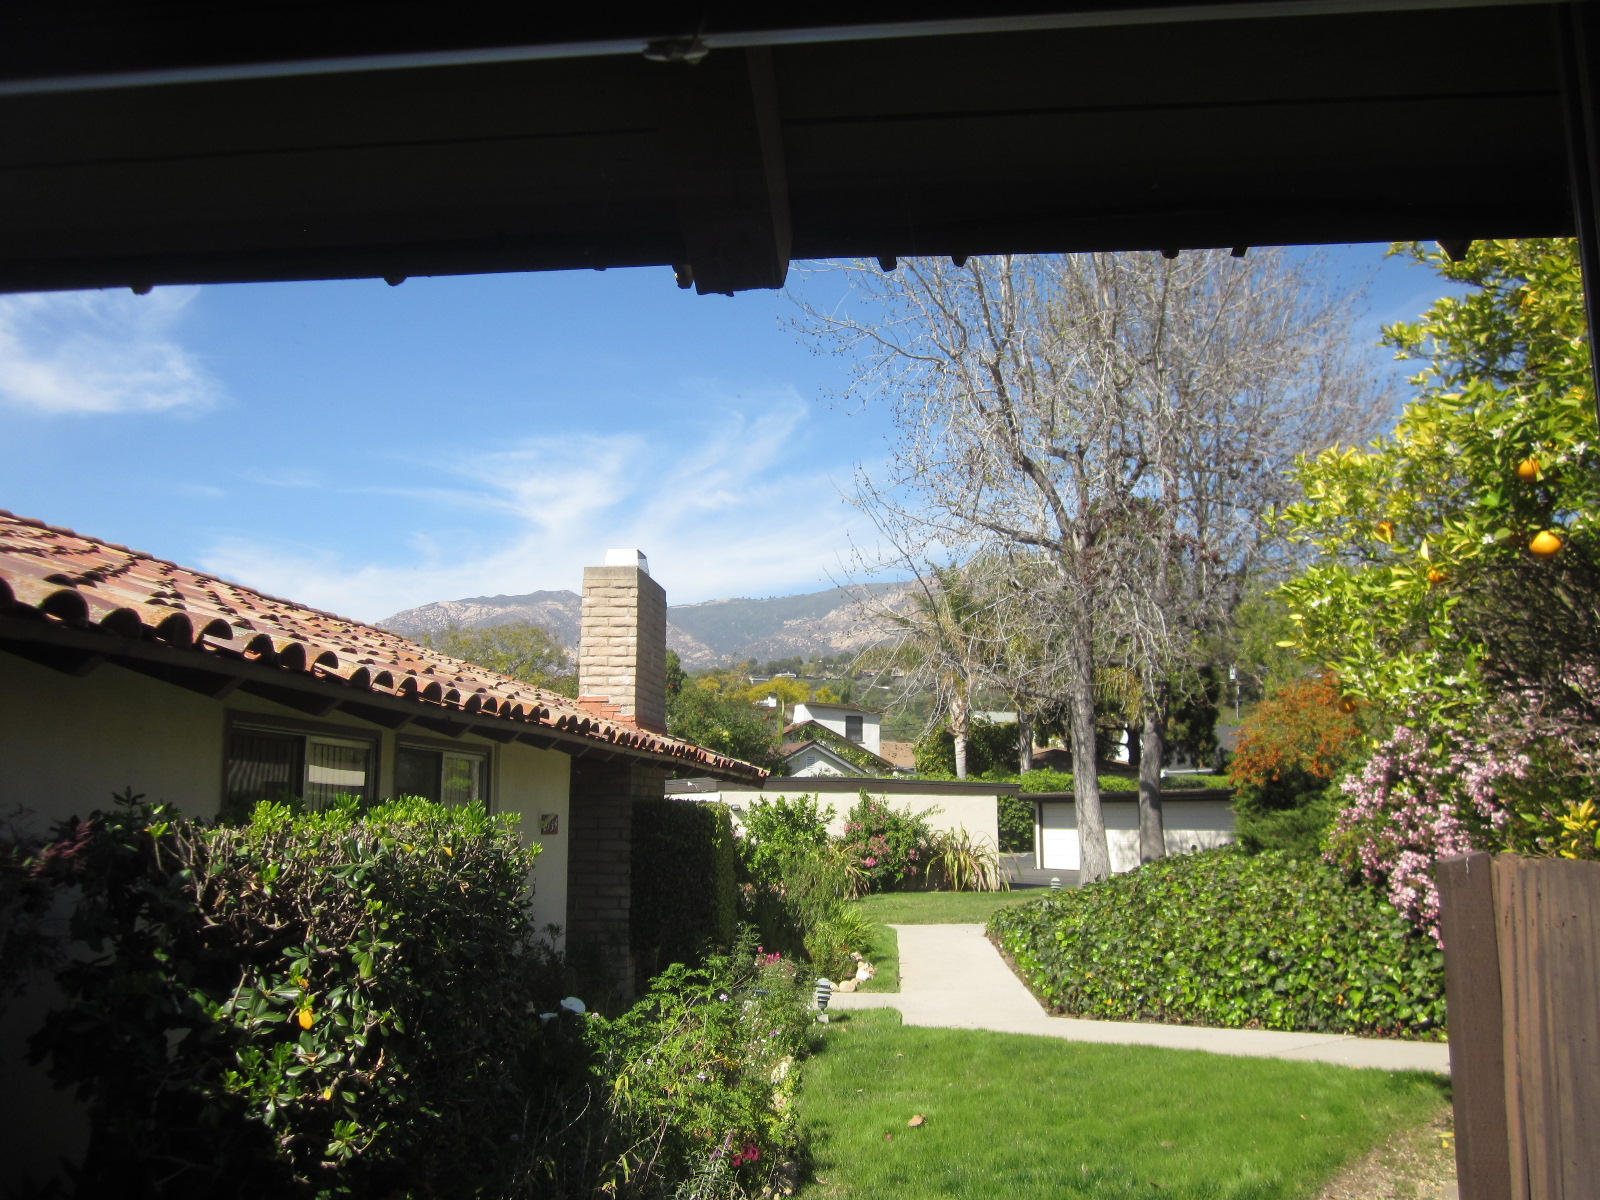 Property photo for 2752 Miradero Dr Santa Barbara, California 93105 - 14-341